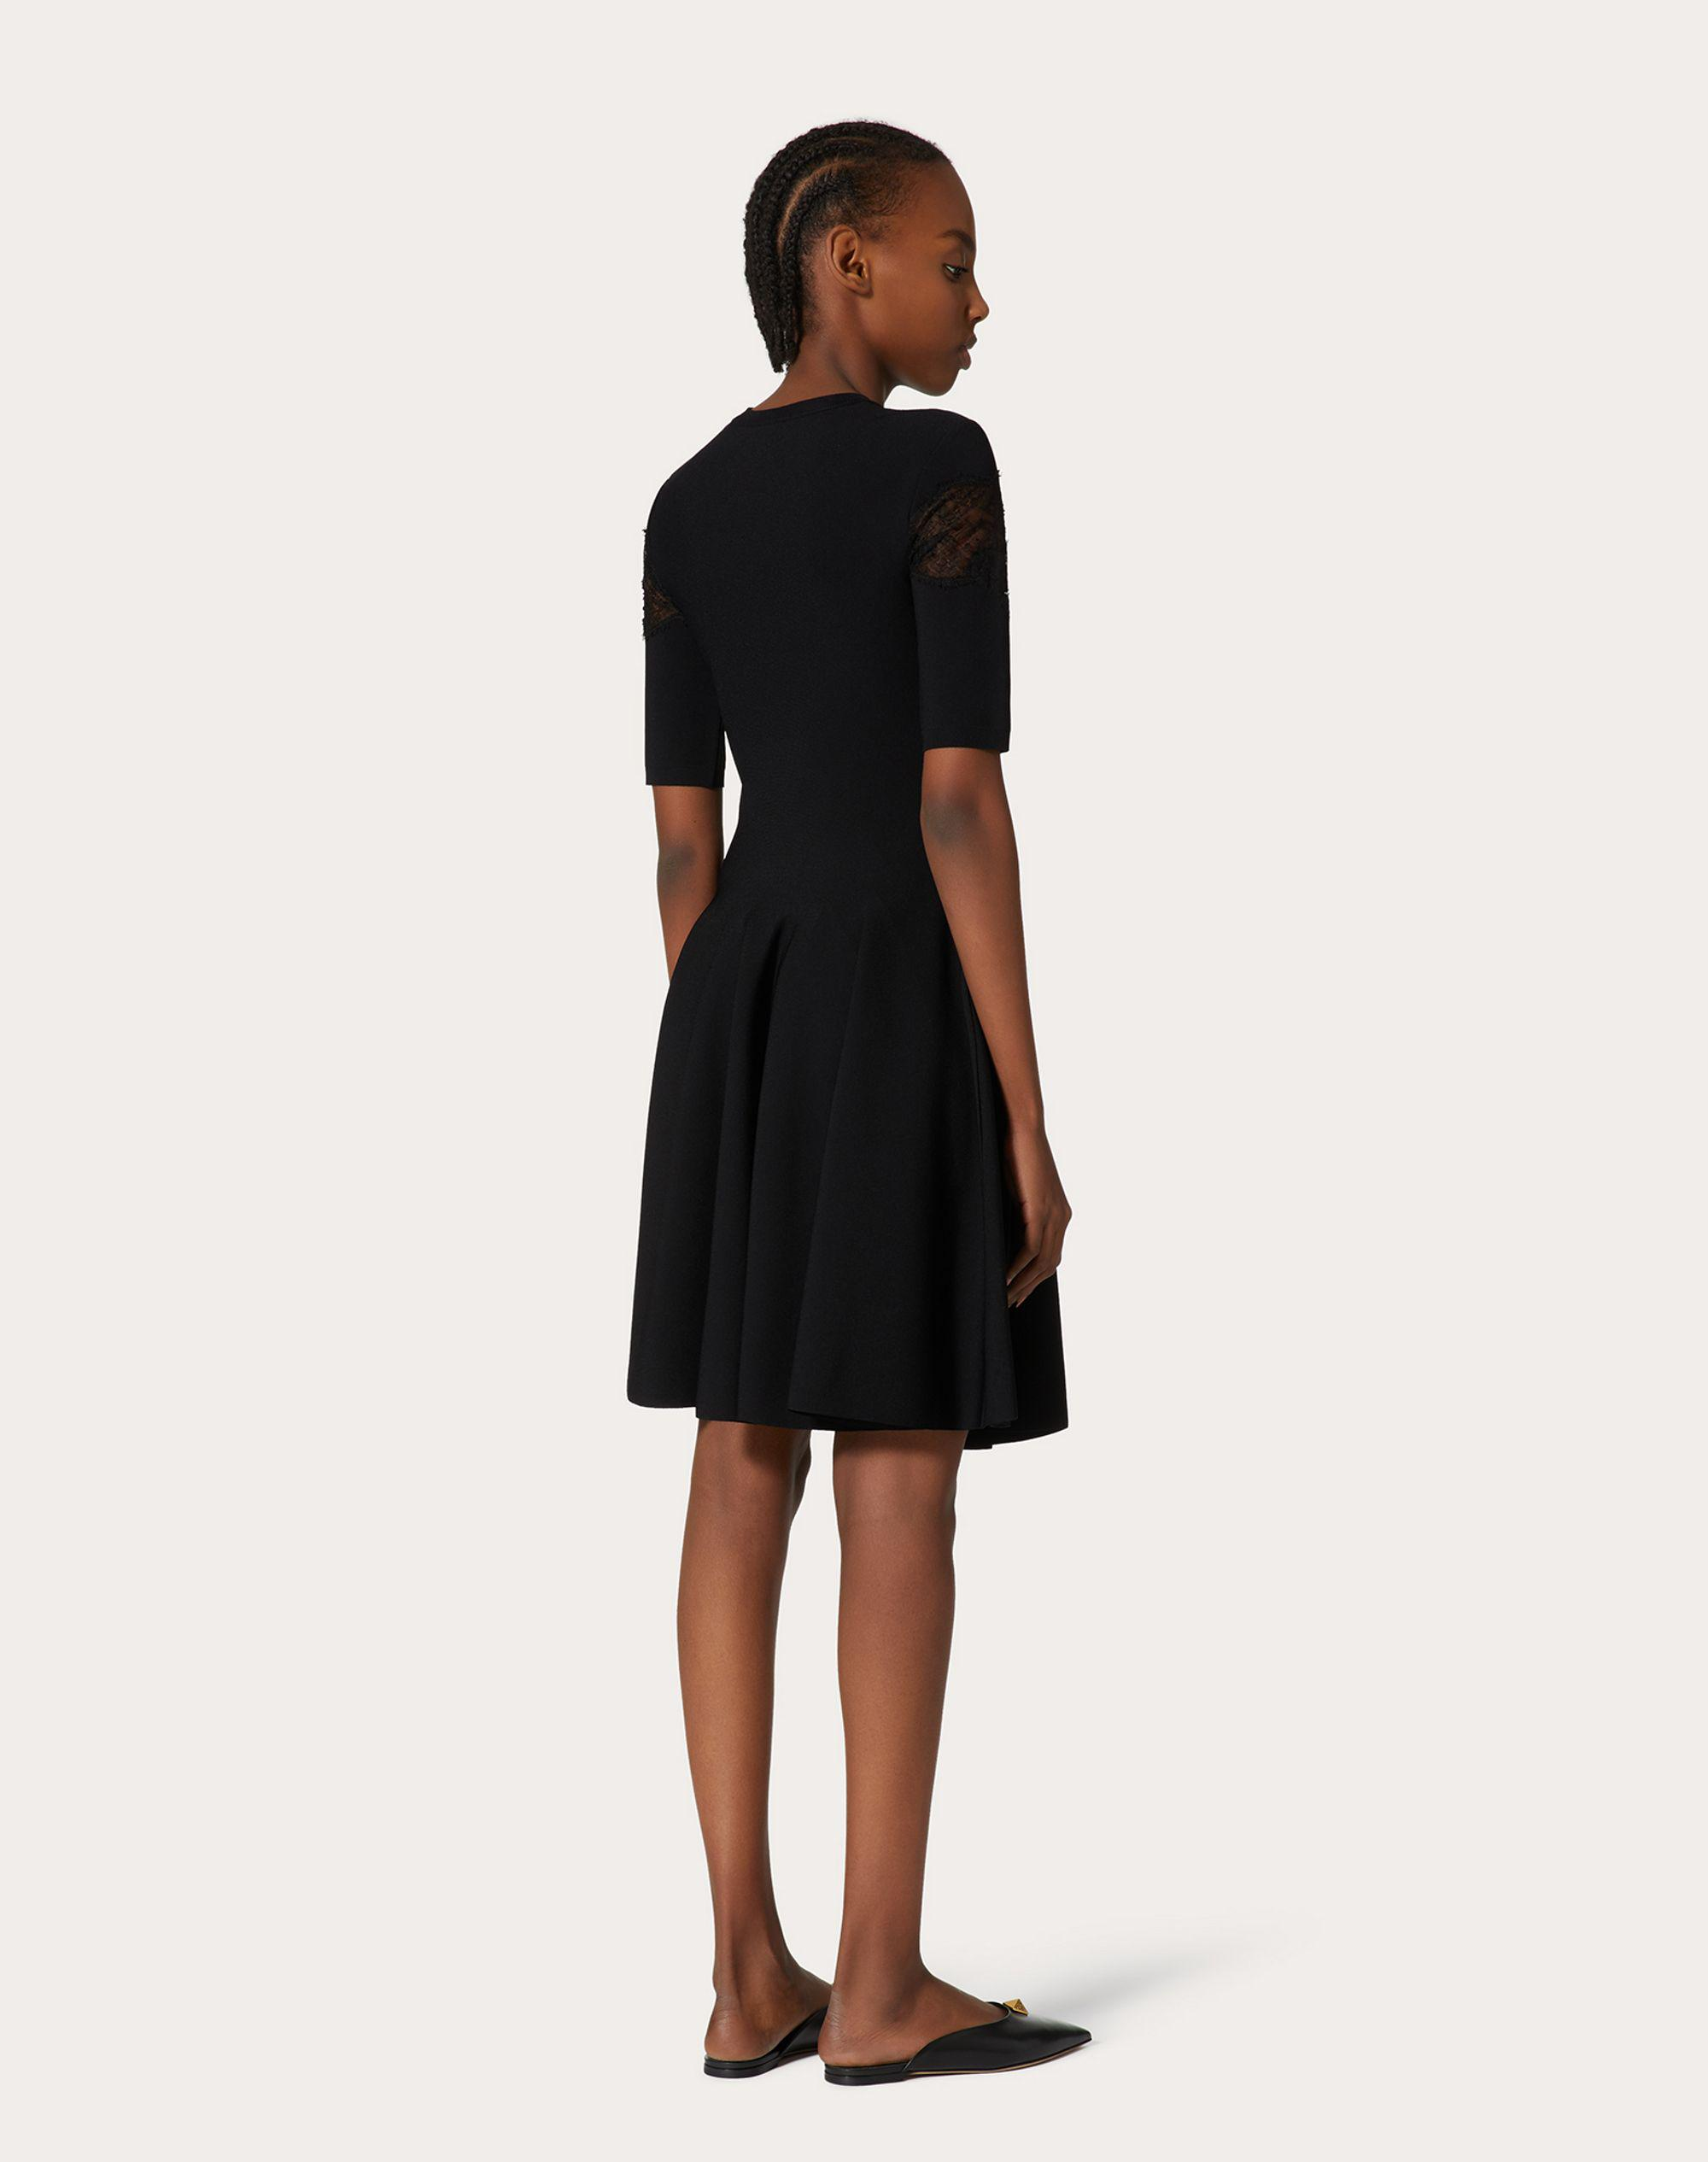 JERSEY DRESS IN STRETCHED VISCOSE AND LACE 2